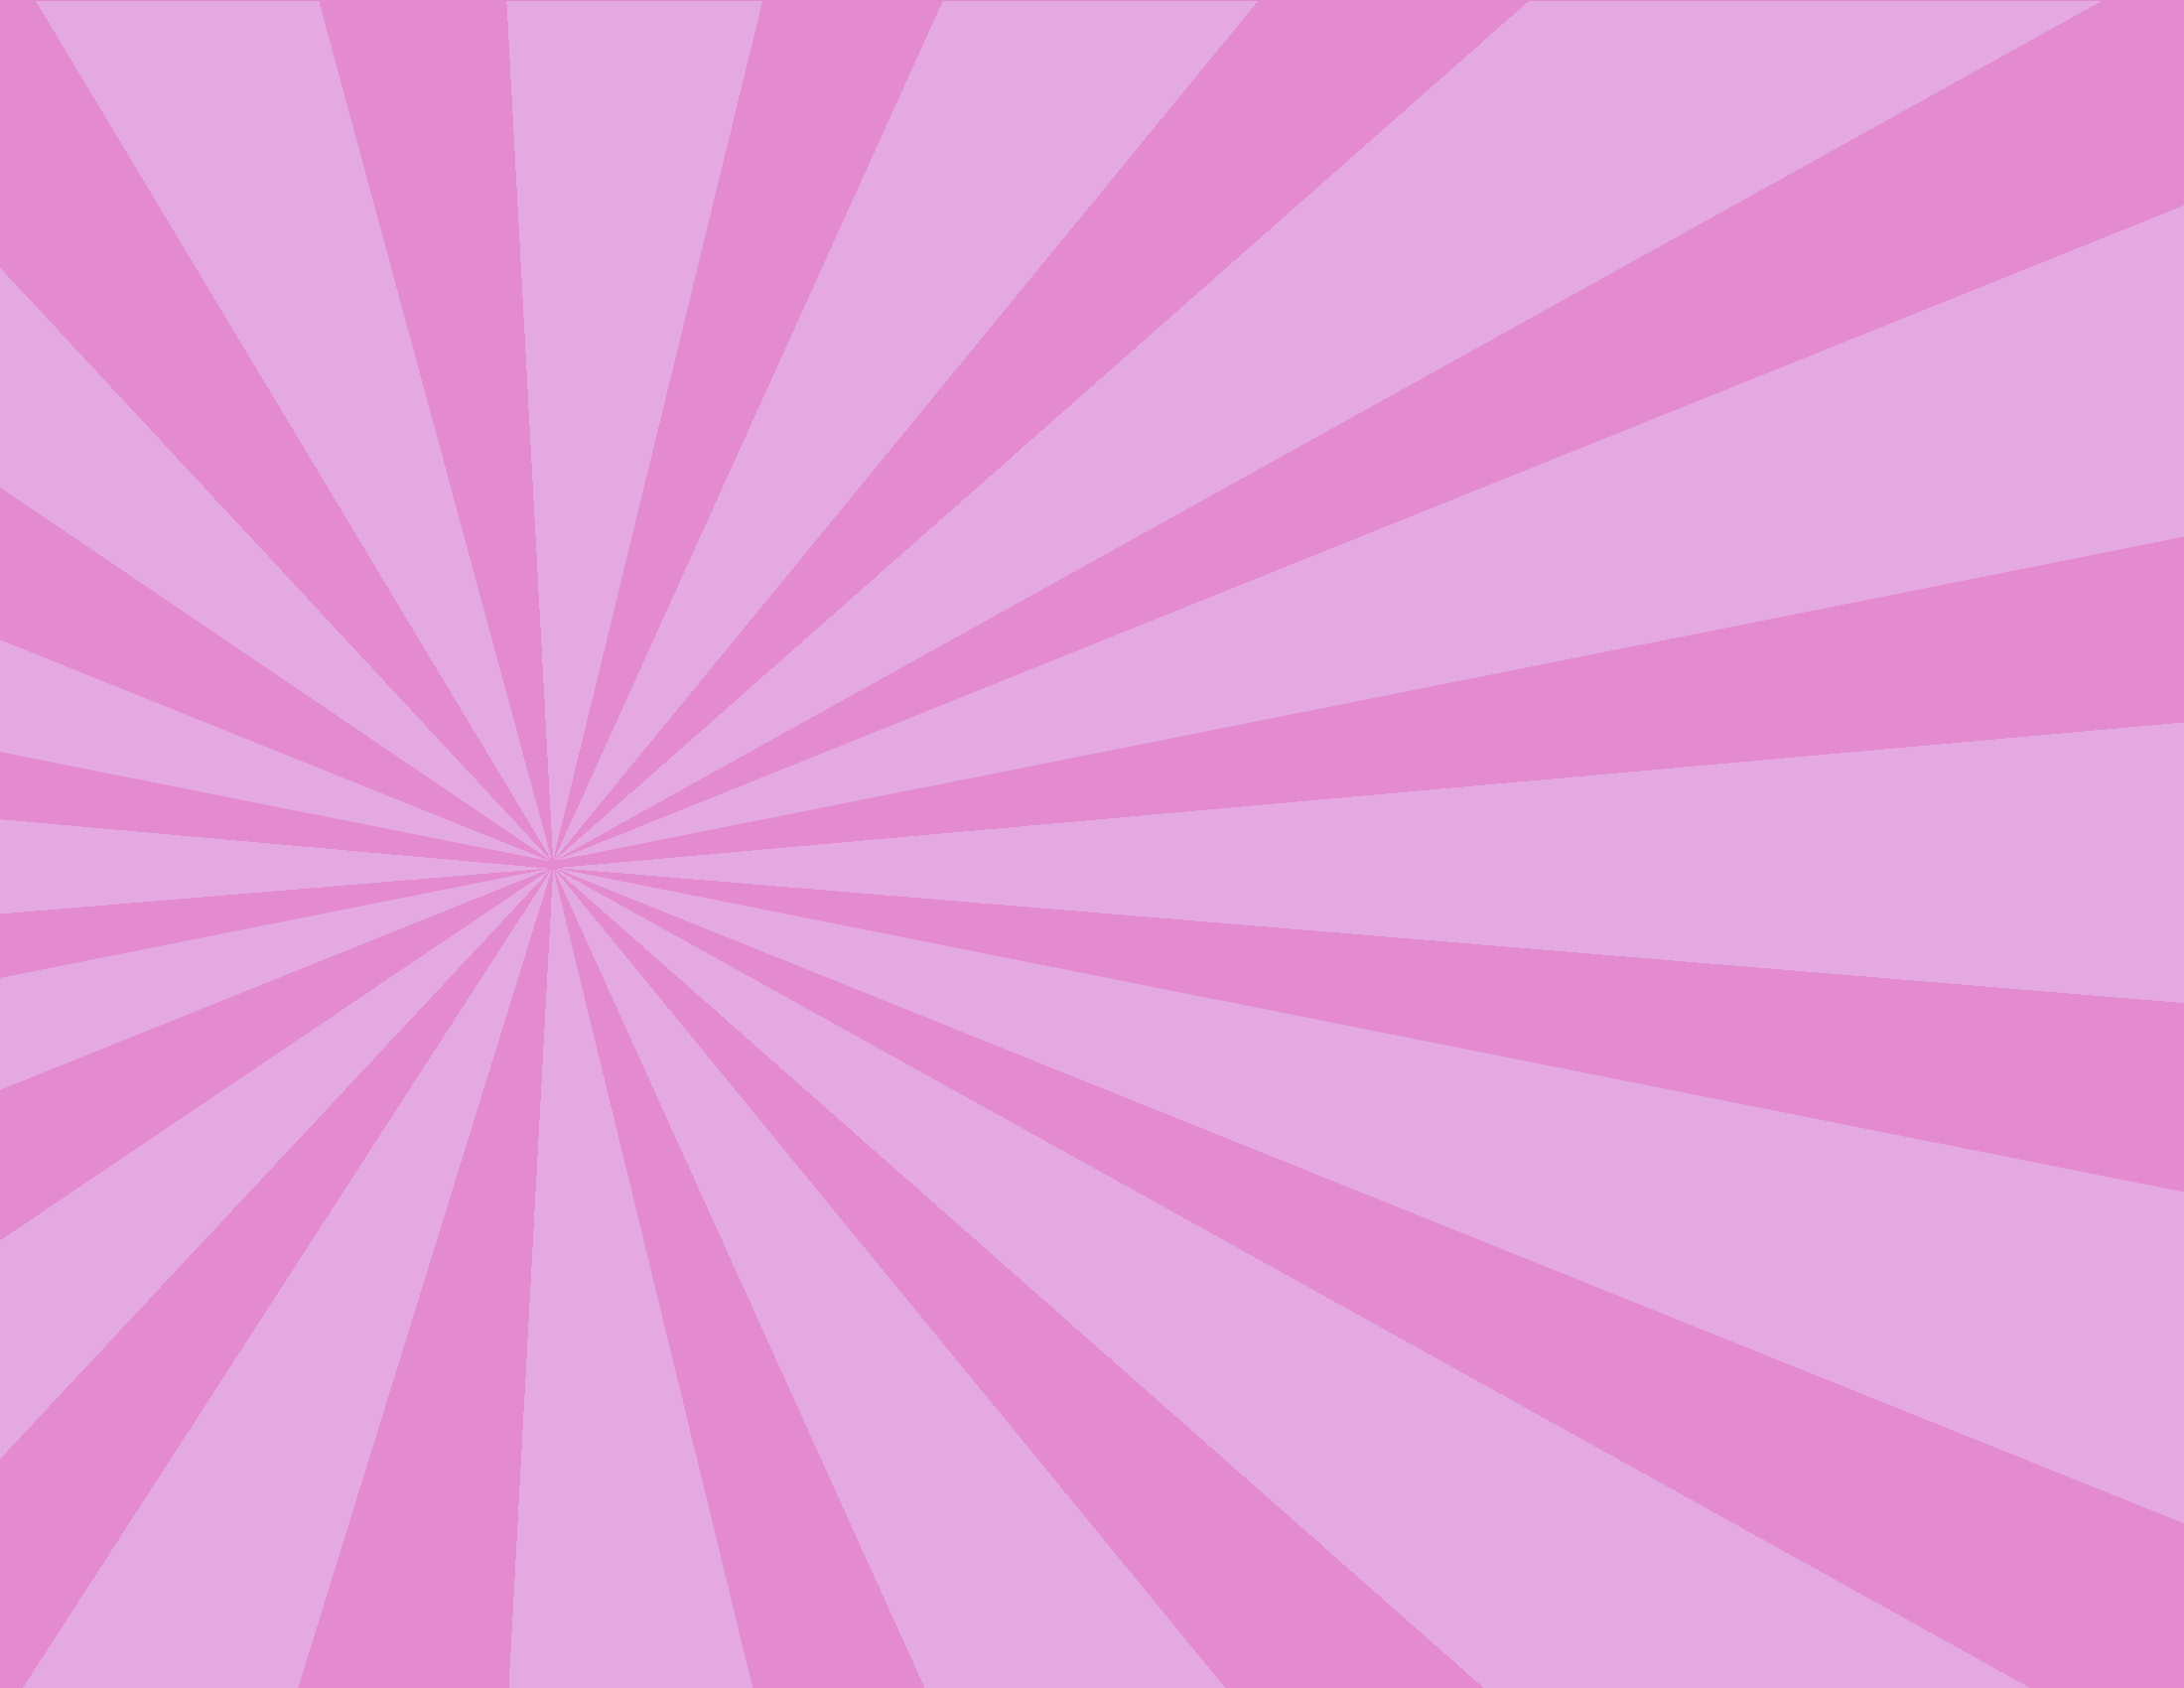 free sunburst background in any color  s